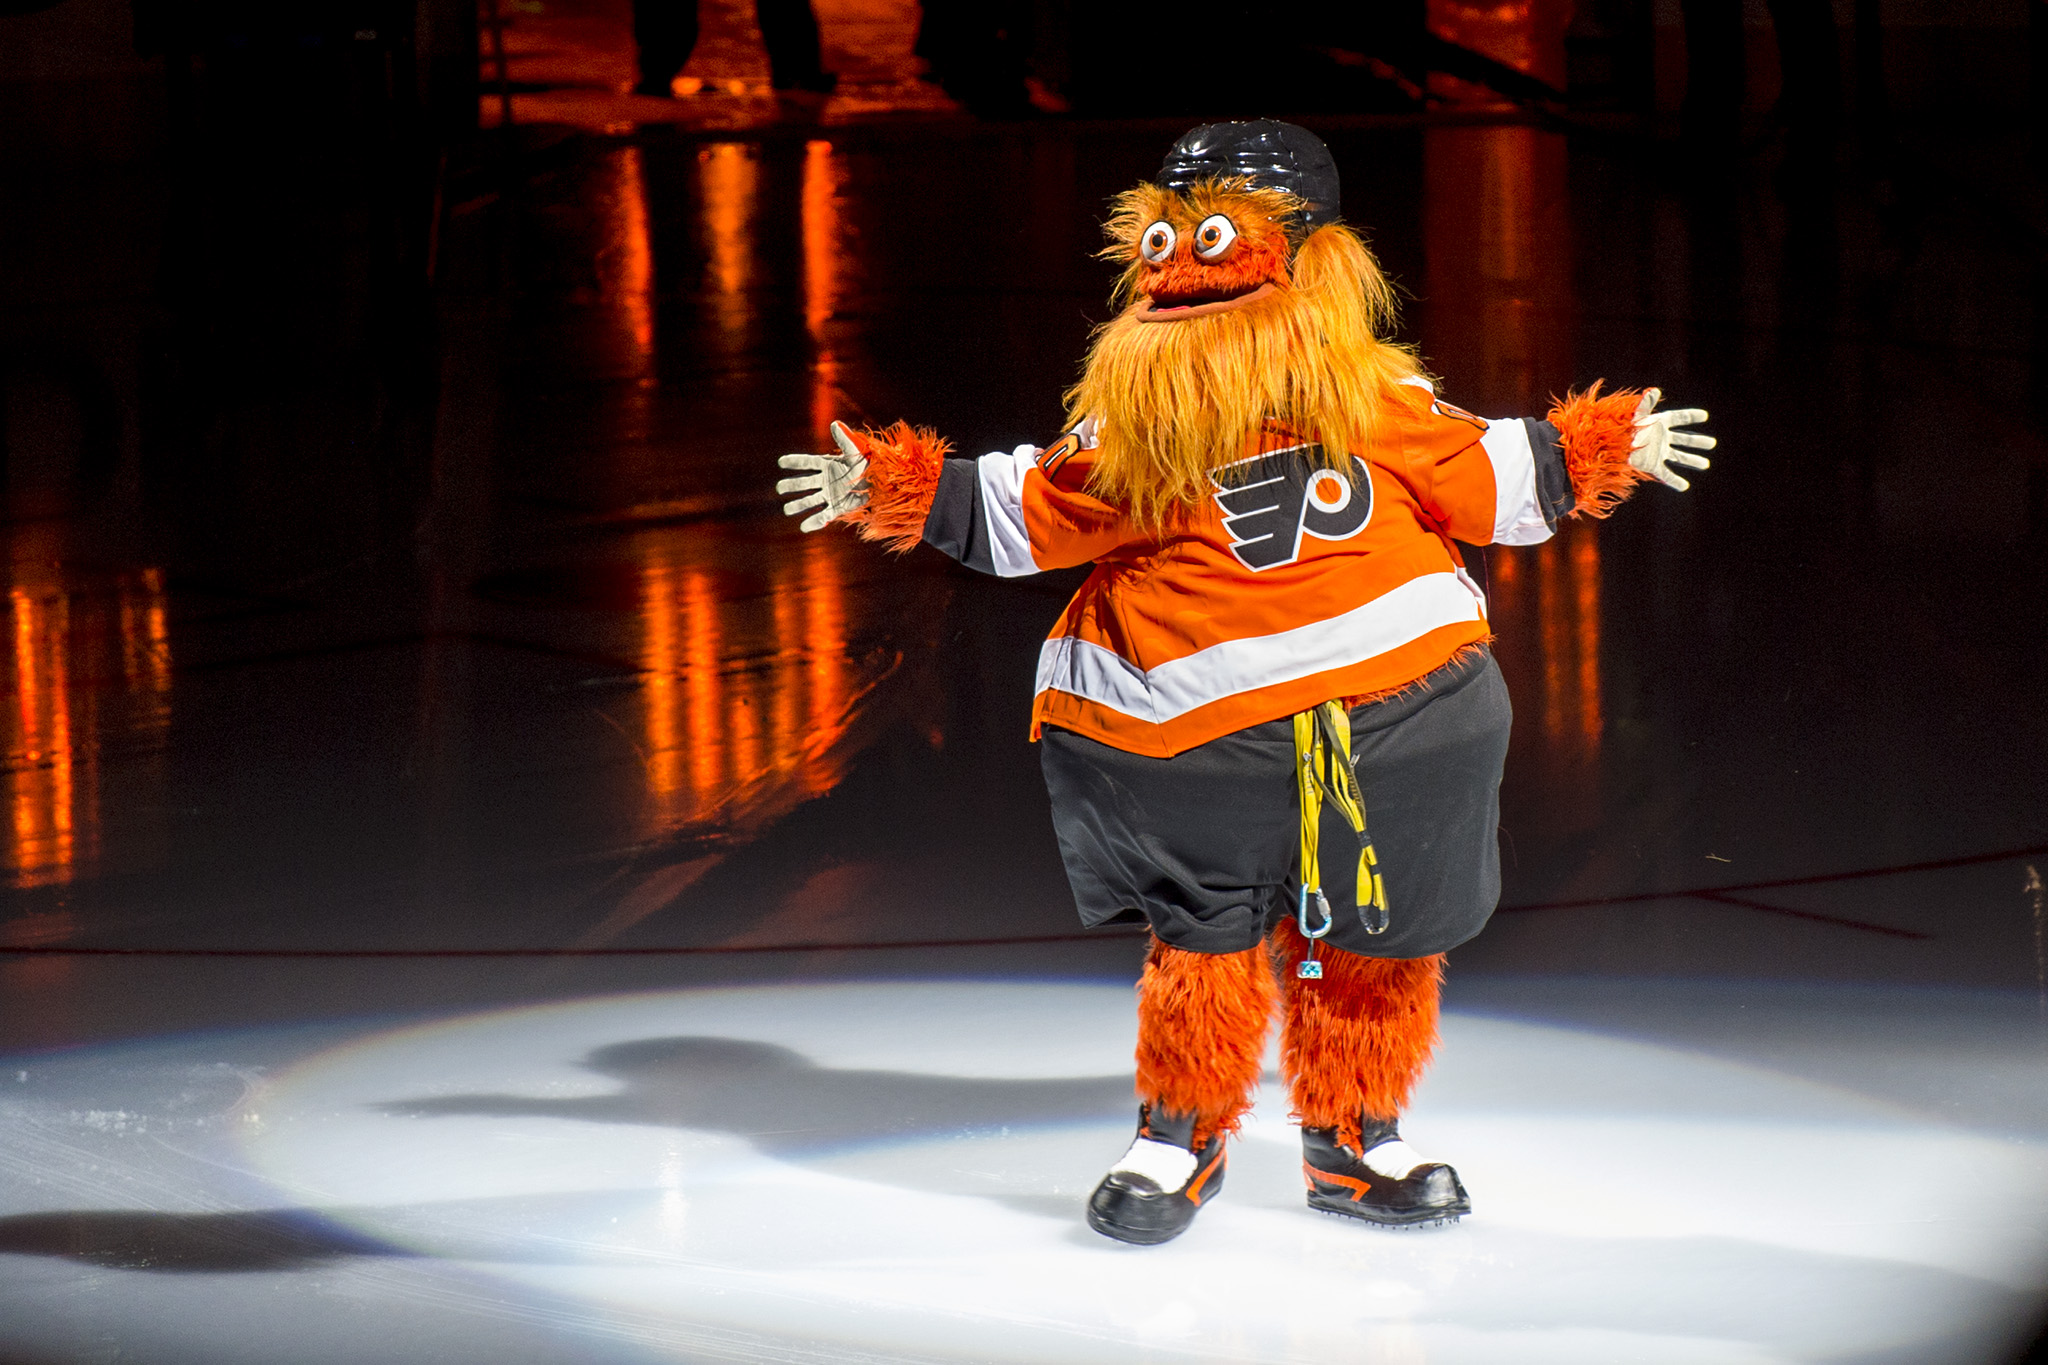 Gritty lands on the ice after making his appearance by rappelling down from the rafters.